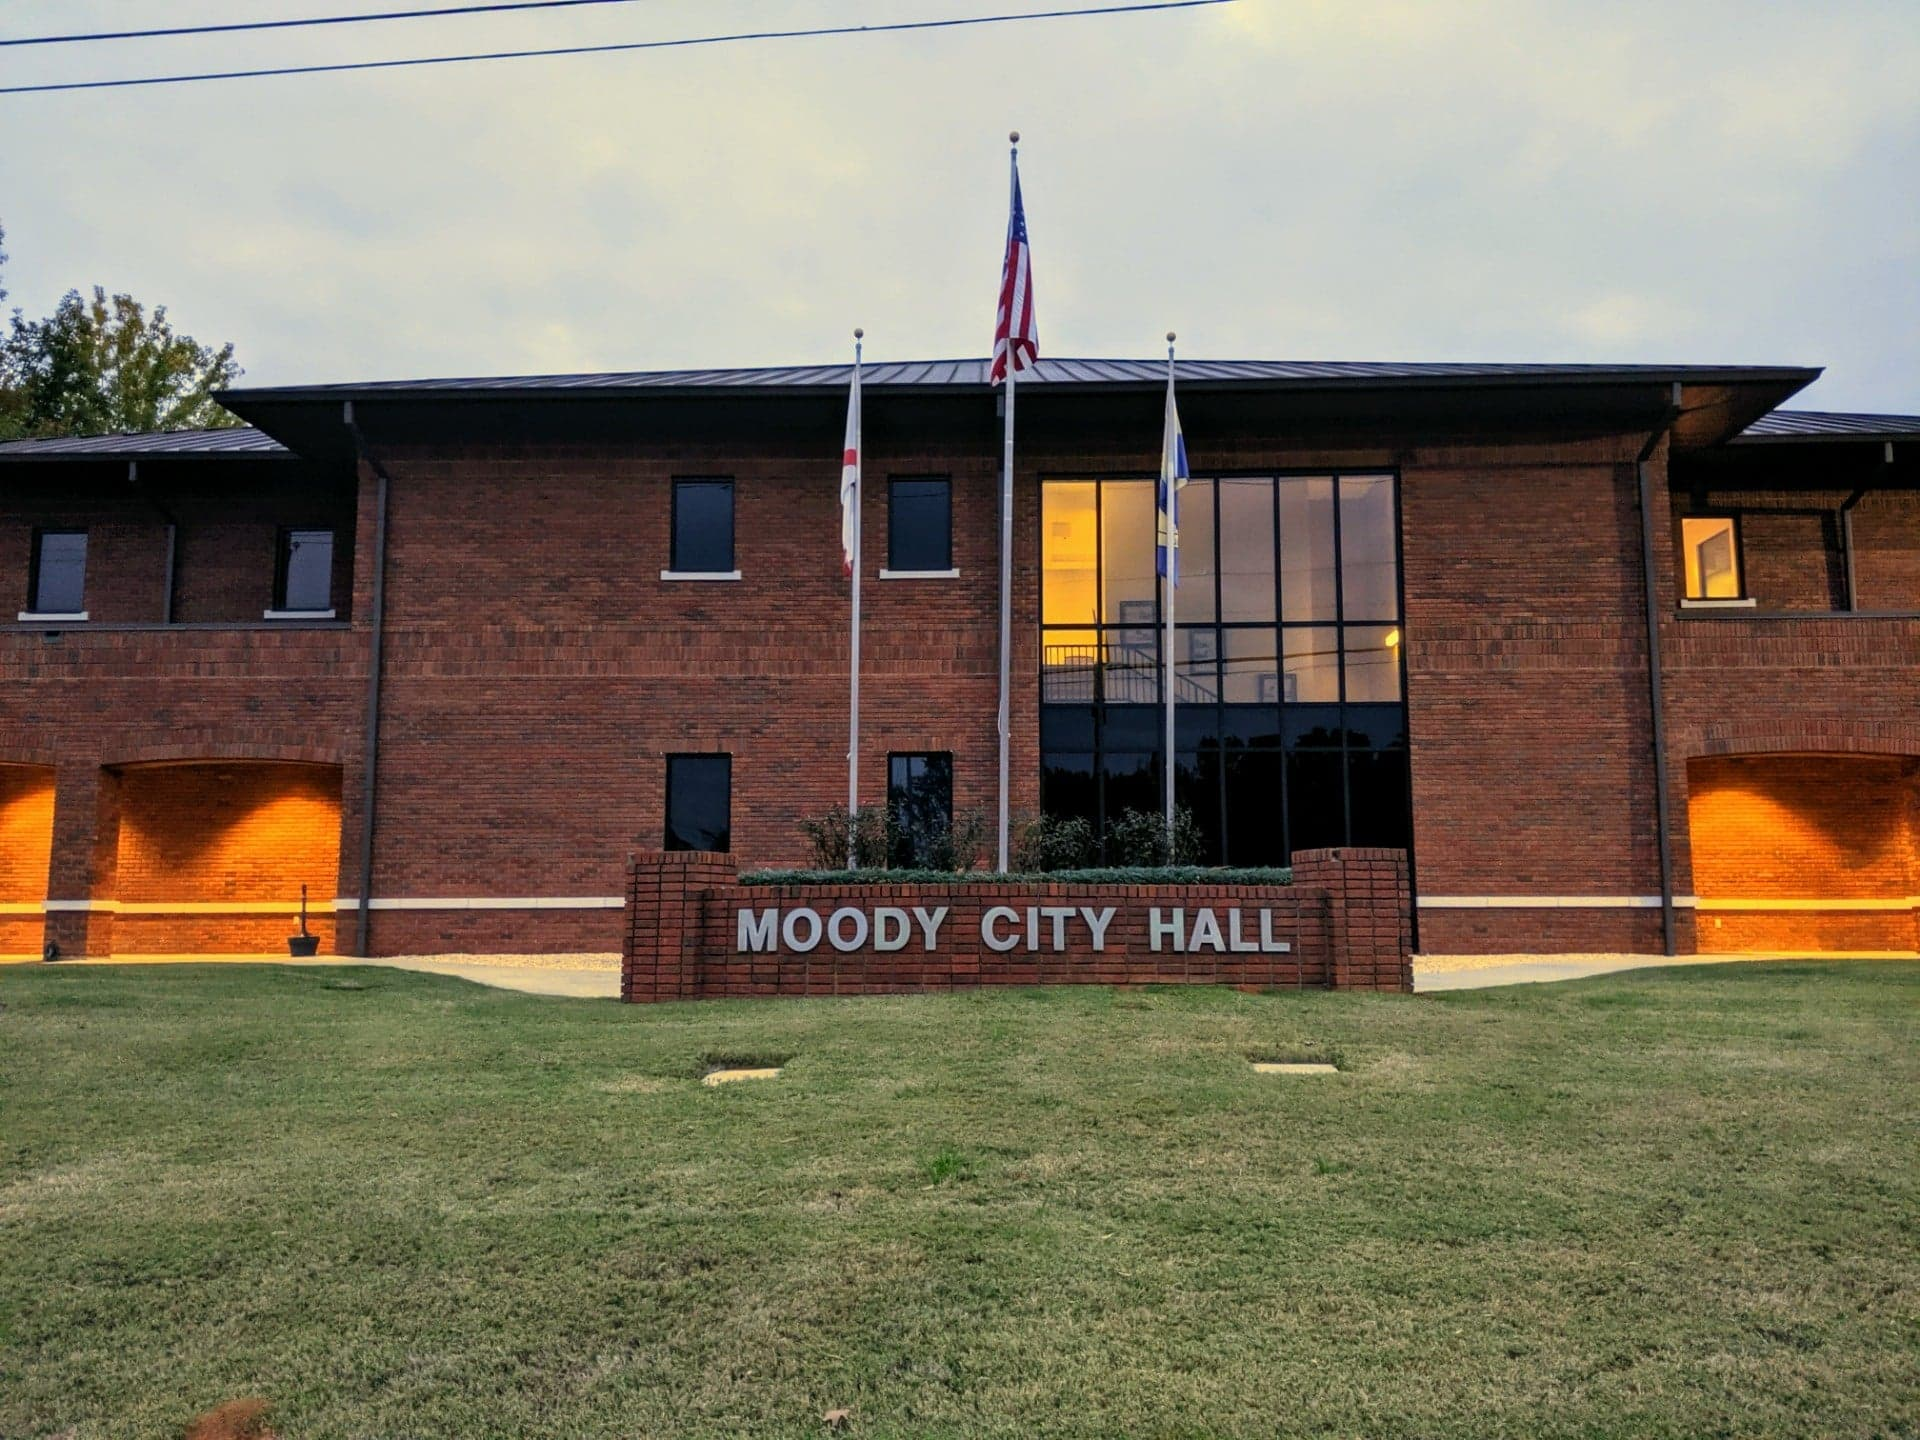 City of Moody ranks in top 10 for Safest Cities in Alabama